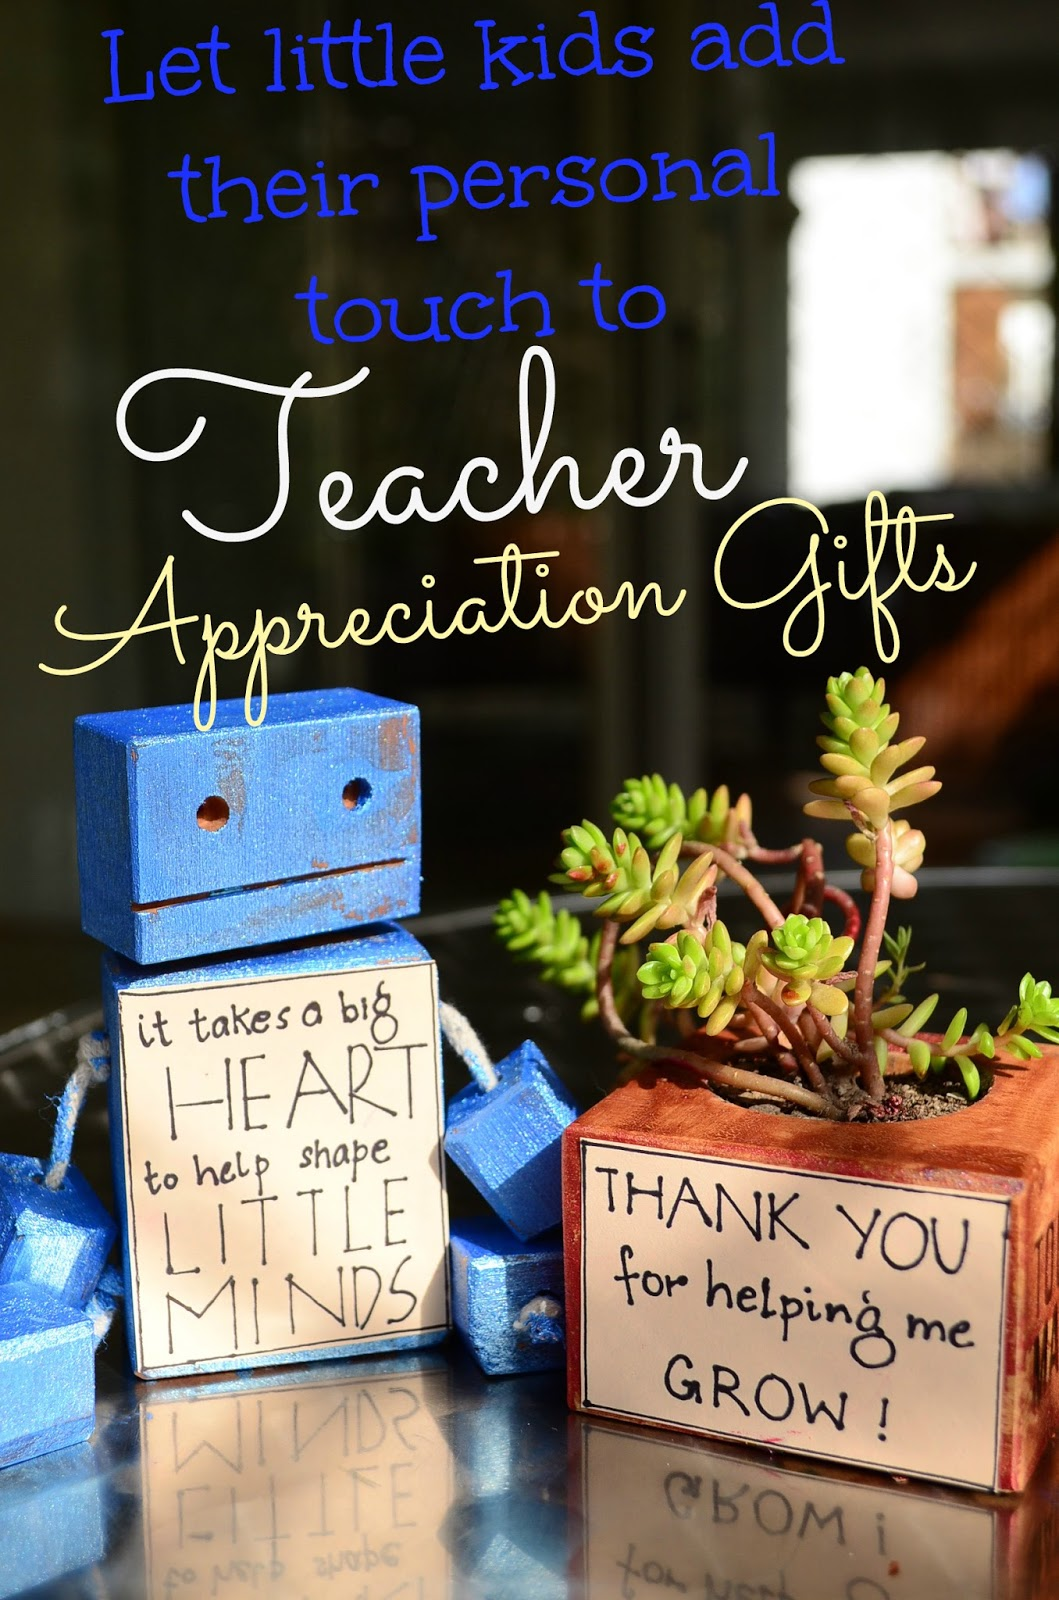 Teacher Appreciation Gifts: Let Little Kids add their Personal Touch